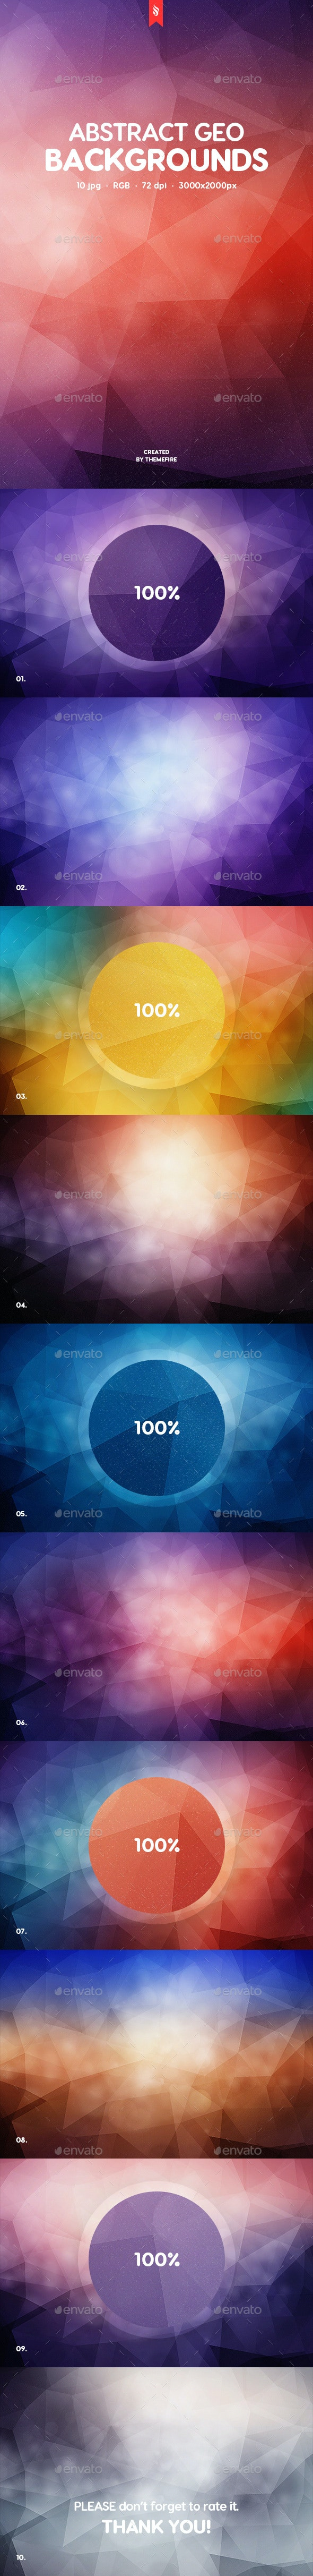 10 Abstract Geo Backgrounds - Abstract Backgrounds